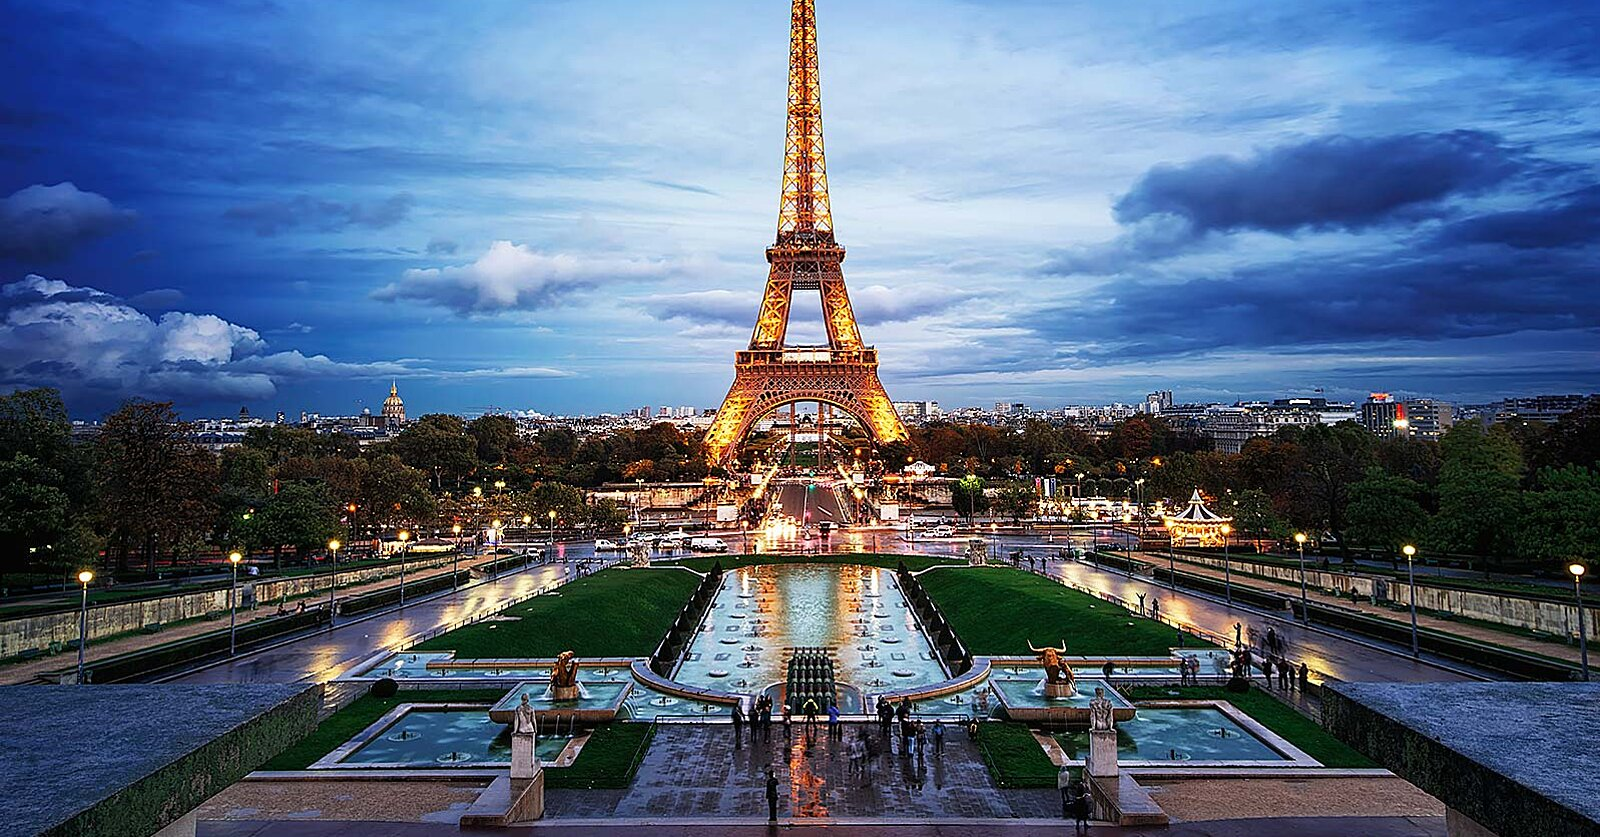 12 Eiffel Tower Facts You Probably Didn't Know | Travel + Leisure